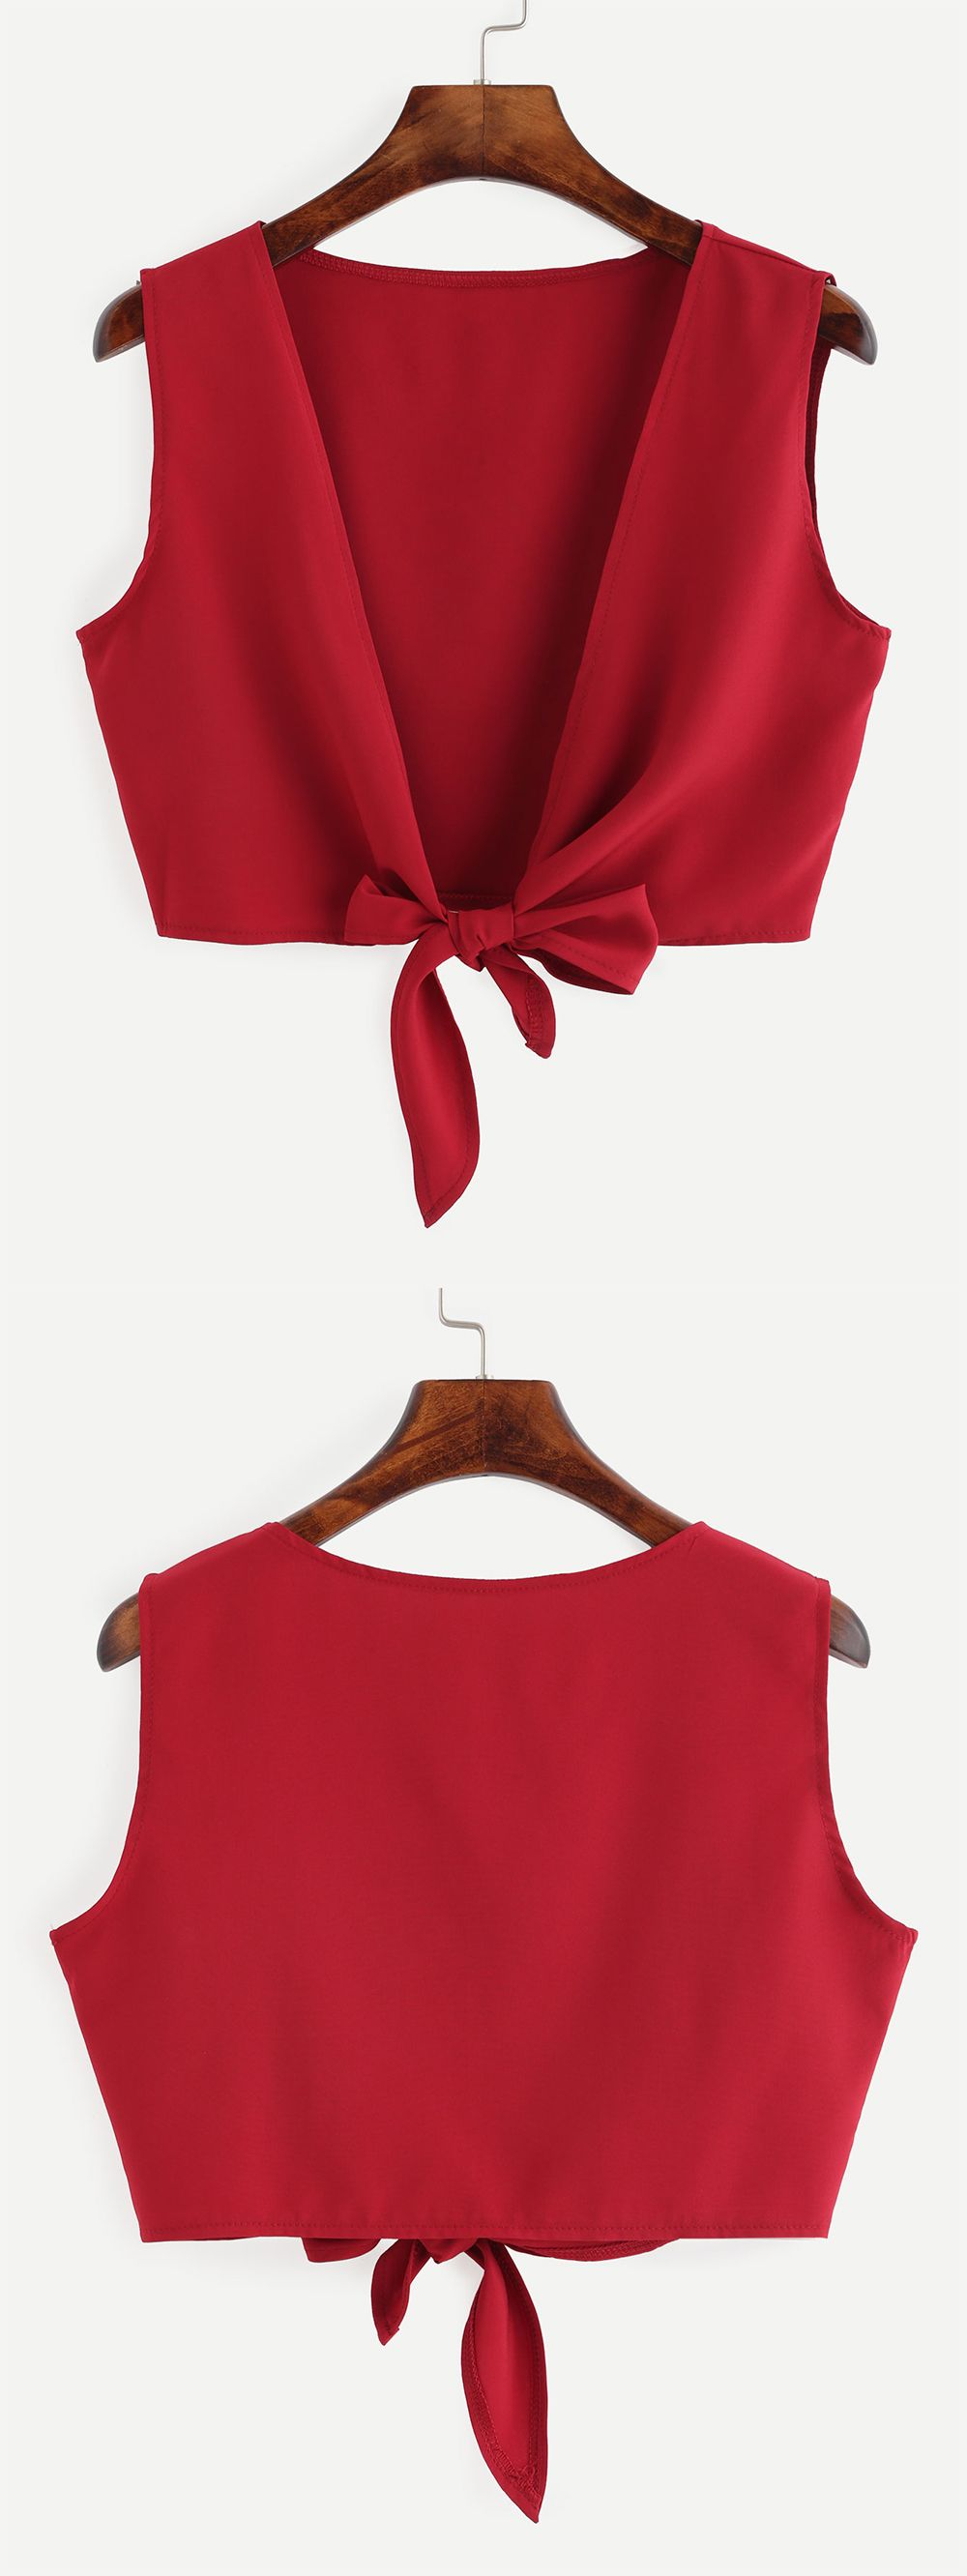 Aubreytate Crop Top With Deep V Back And Knot Make This With Some Of The Blouses Ive Thrown Out Blouse Design Models Blouse Designs Diy Clothes